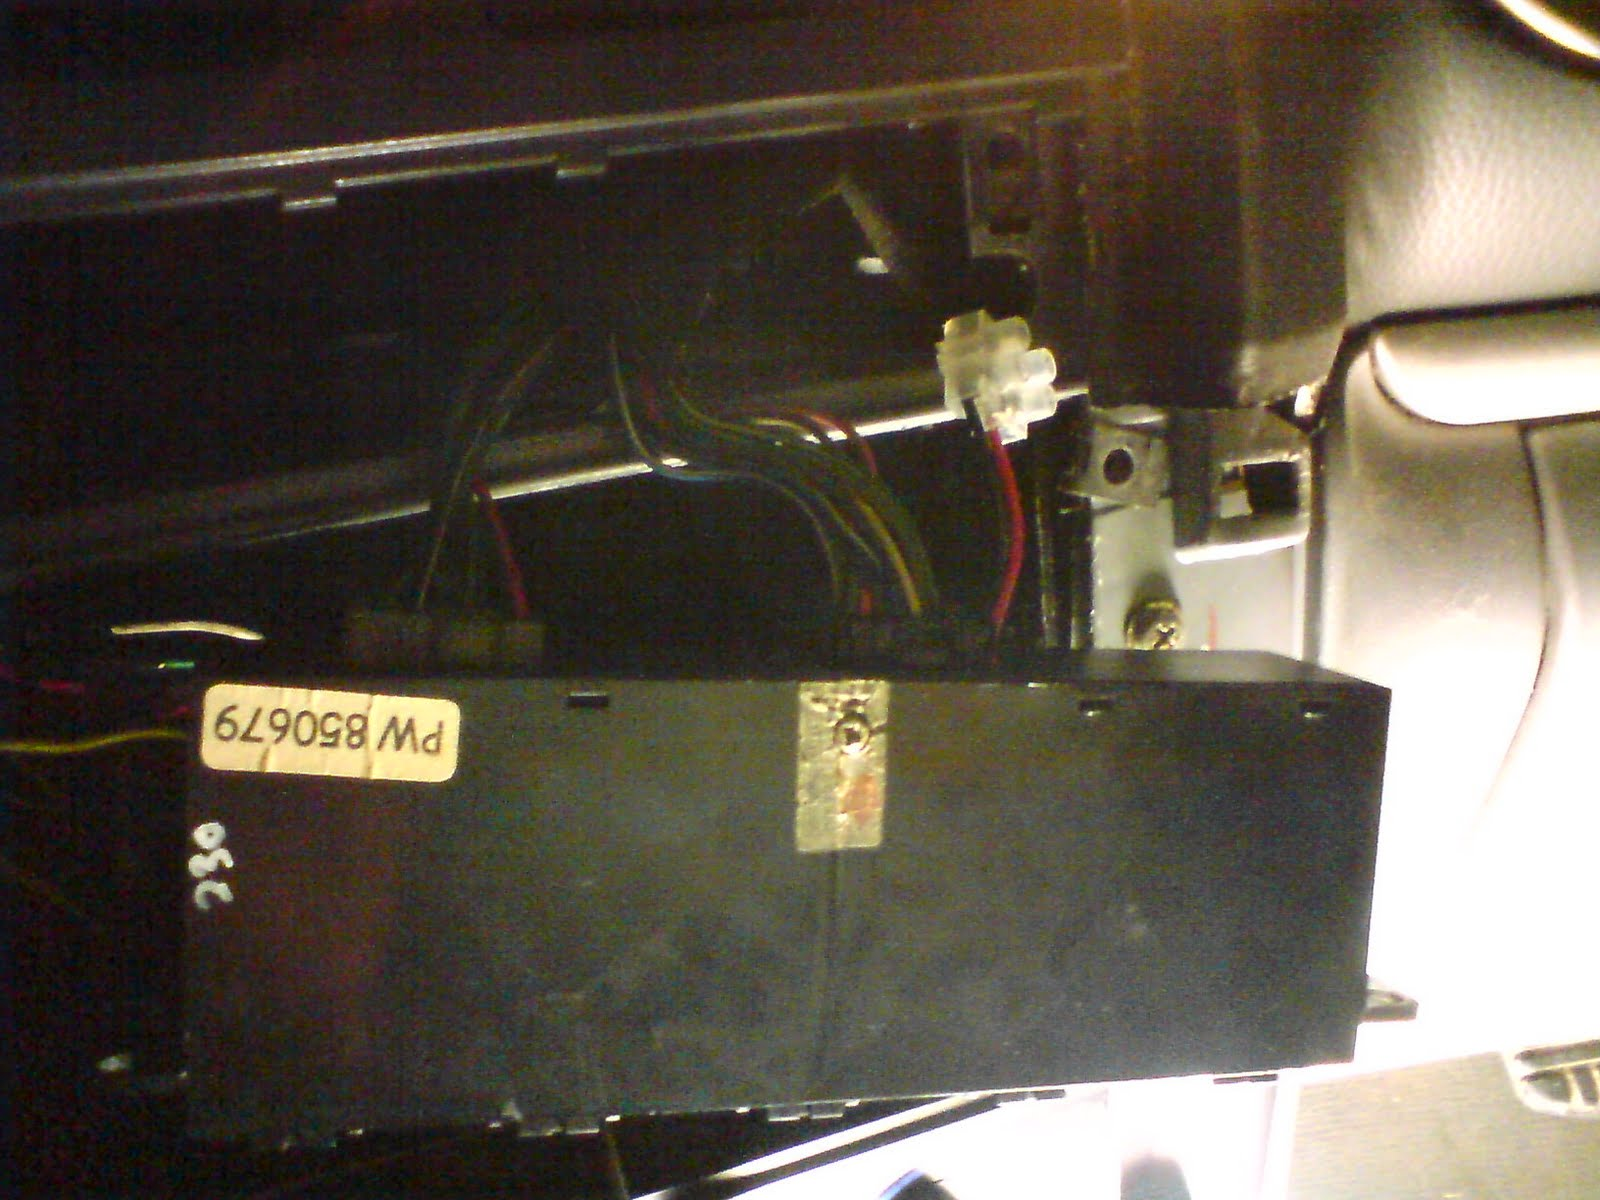 The panel pulled out with wires still on the port